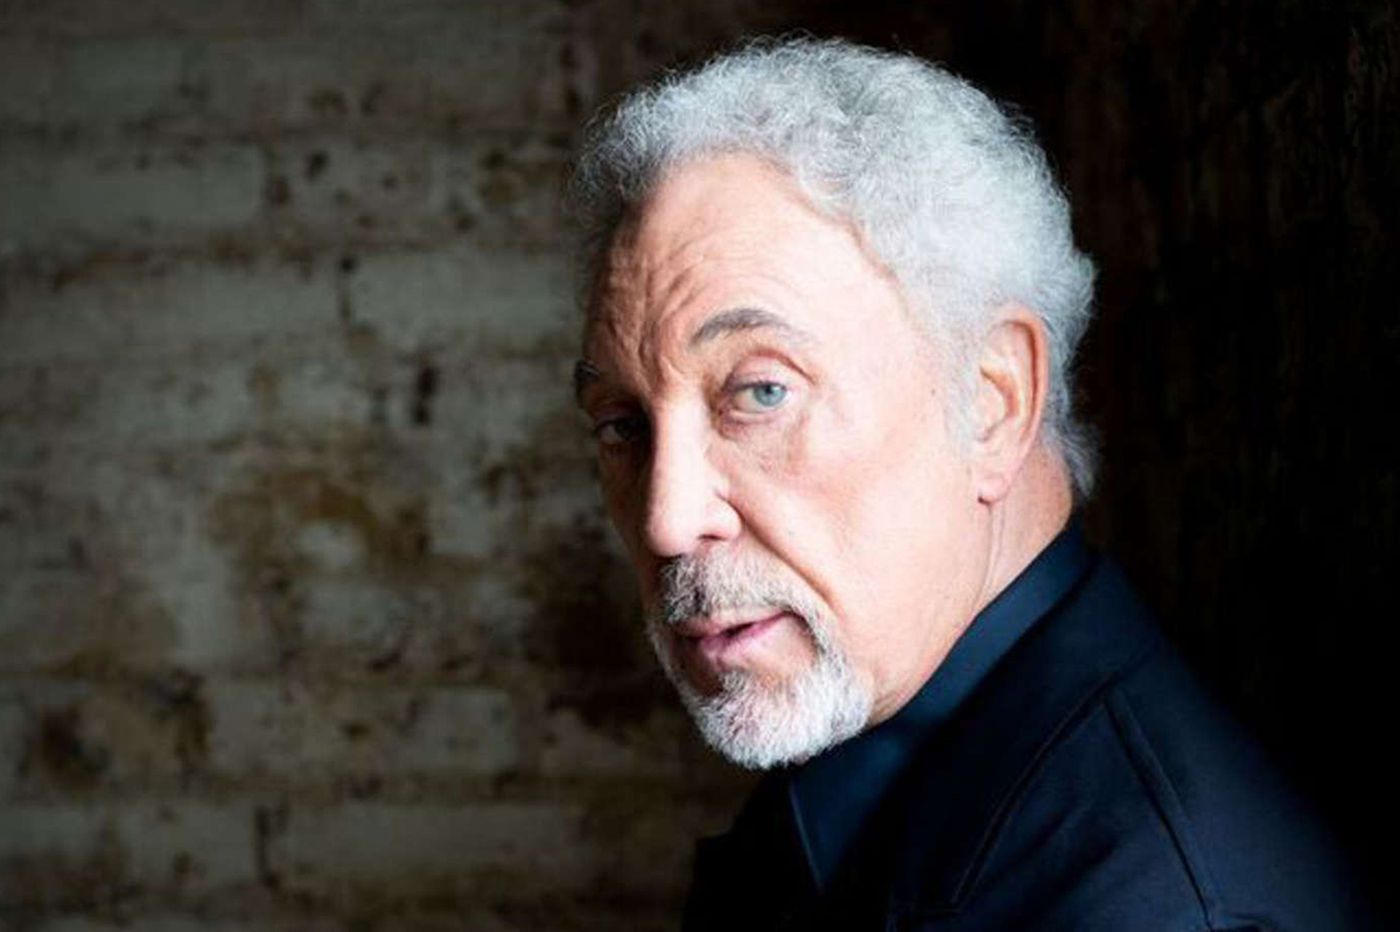 Total recall: Tom Jones reviews his life in new album, and autobiography